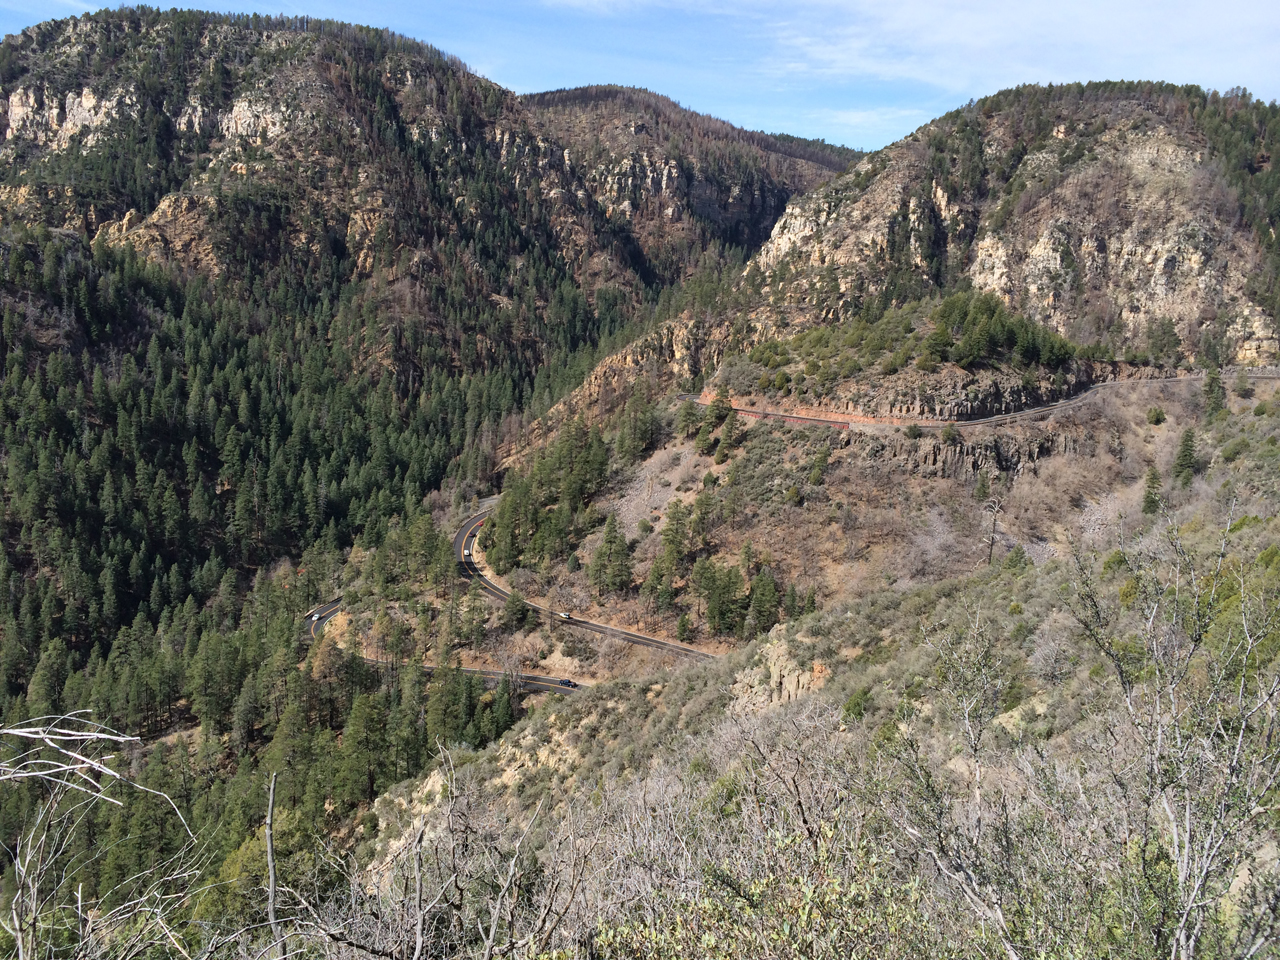 Great climb. But crap to get to. The road between Flagstaff and Sedona (89A) is poop.